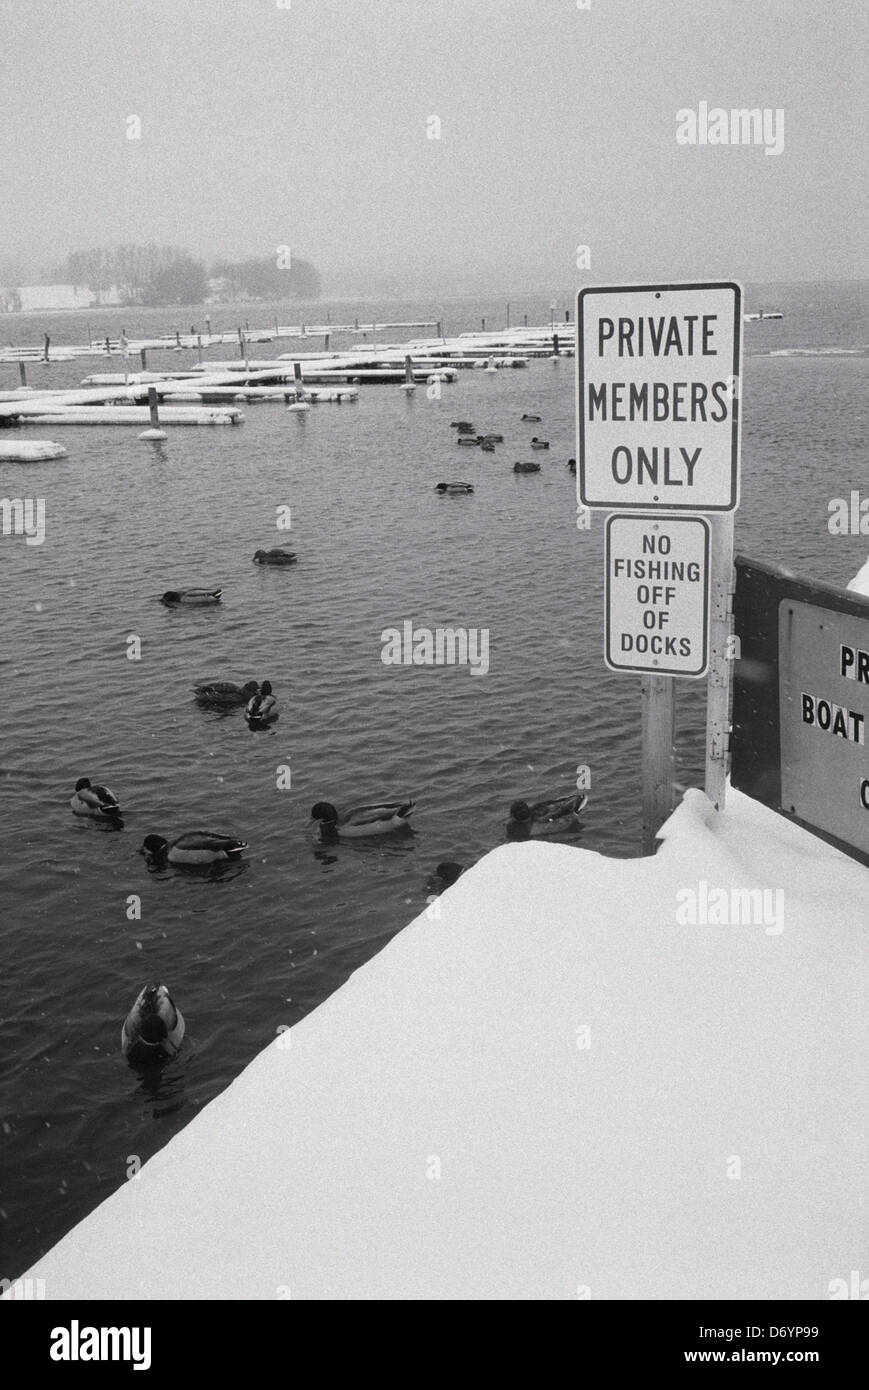 Ducks swimming in water next Private Members Only sign on snow covered dock Lake Michigan Chicago Cook County Illinois - Stock Image